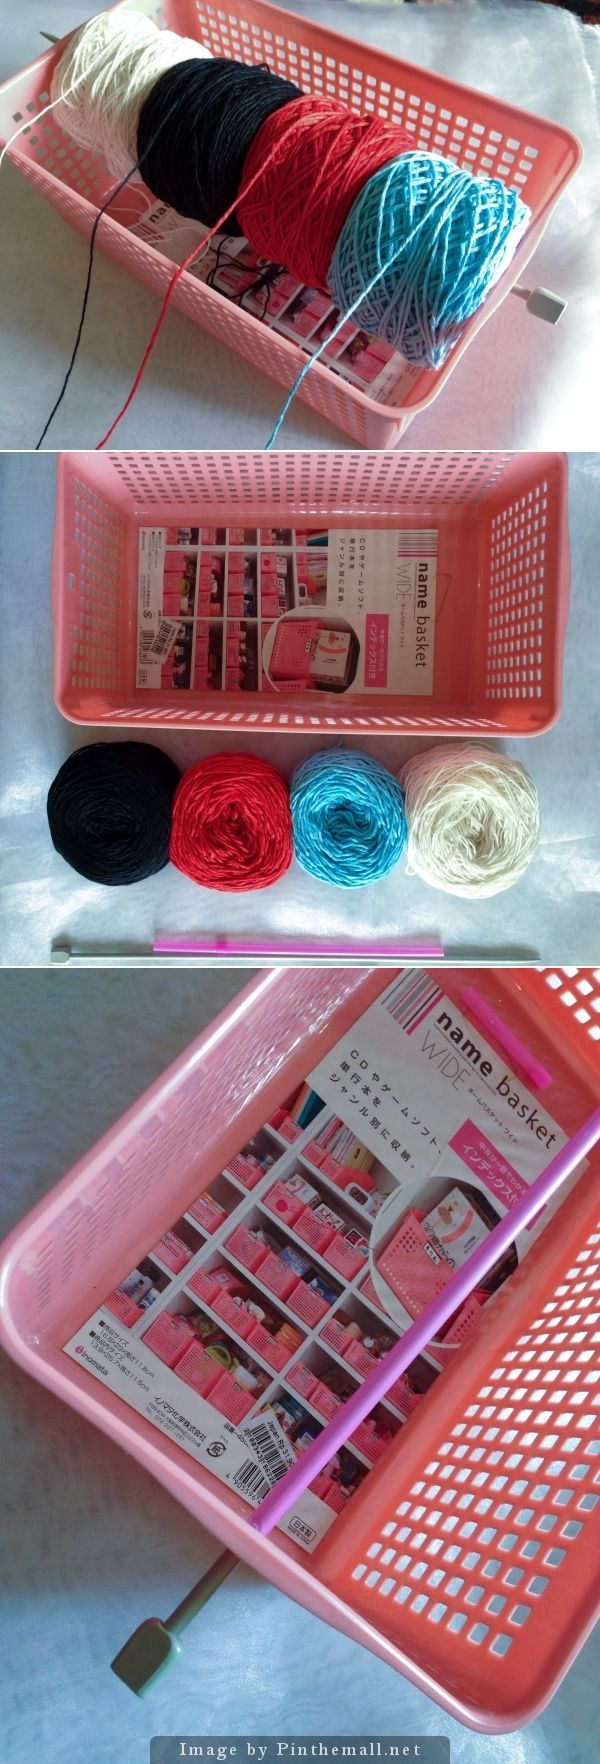 """""""Organize the yarn you're using in a project with this simple DIY. You need: 1 plastic basket with holes, 1 knitting needle, 1 drinking straw, and your yarn wound as in the picture. Voila! Easy as pie and there's room for your hooks, needles, scissors and pattern underneath, too!"""" 4U from the #KnittingGuru"""